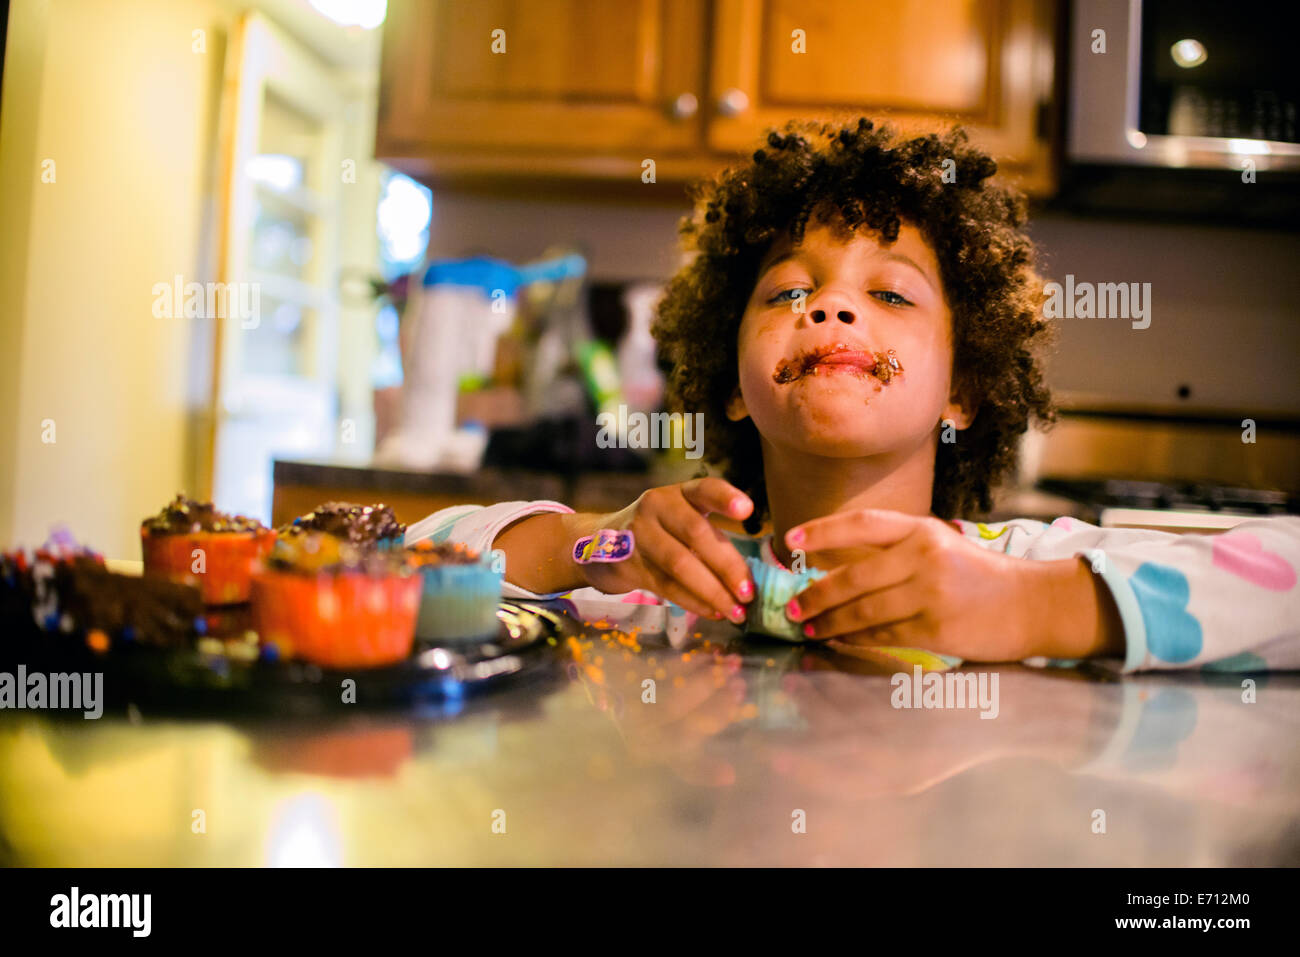 Portrait of girl with chocolate covered mouth eating cupcakes - Stock Image